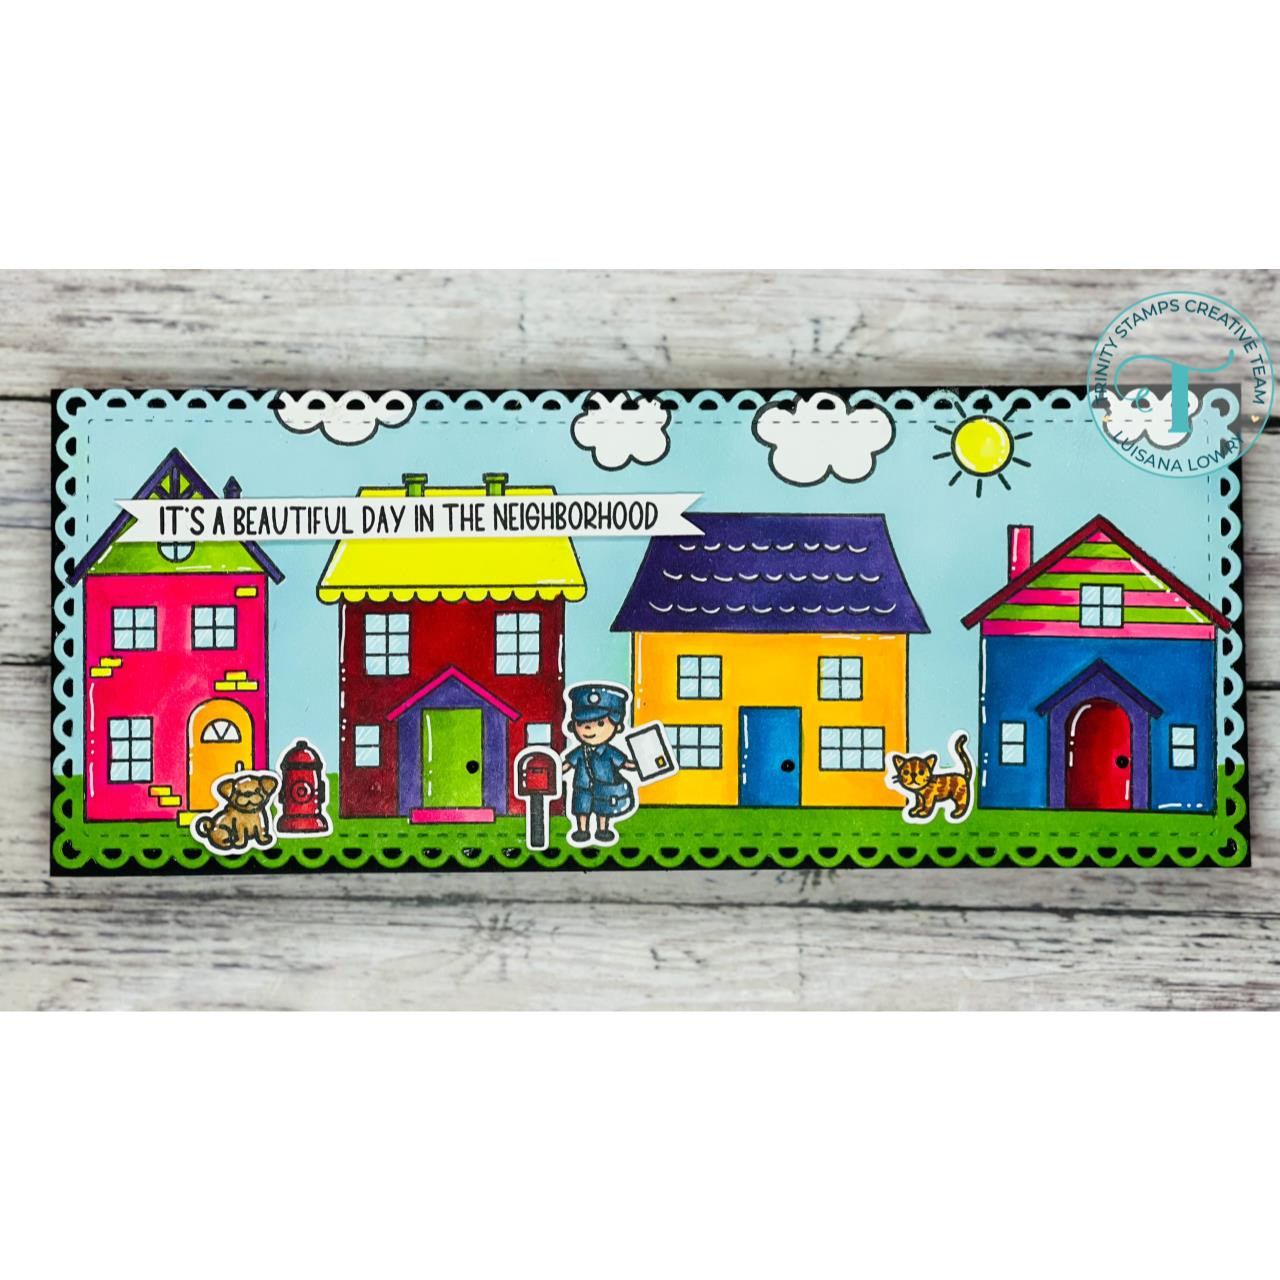 It's a Beautiful Day in the Neighborhood, Trinity Stamps Clear Stamps -